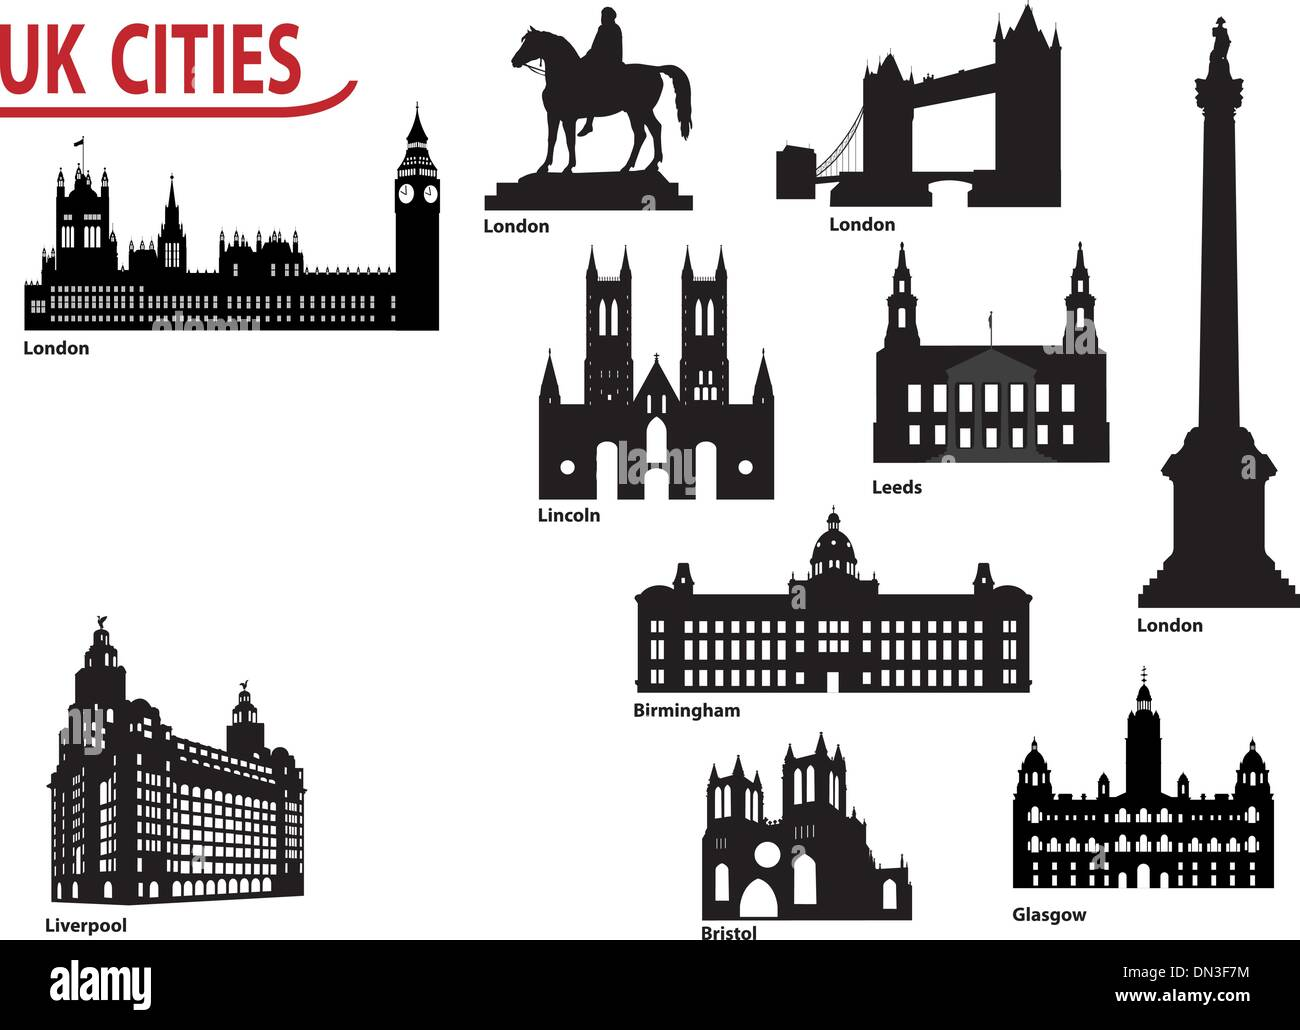 Silhouettes of cities in the UK - Stock Vector